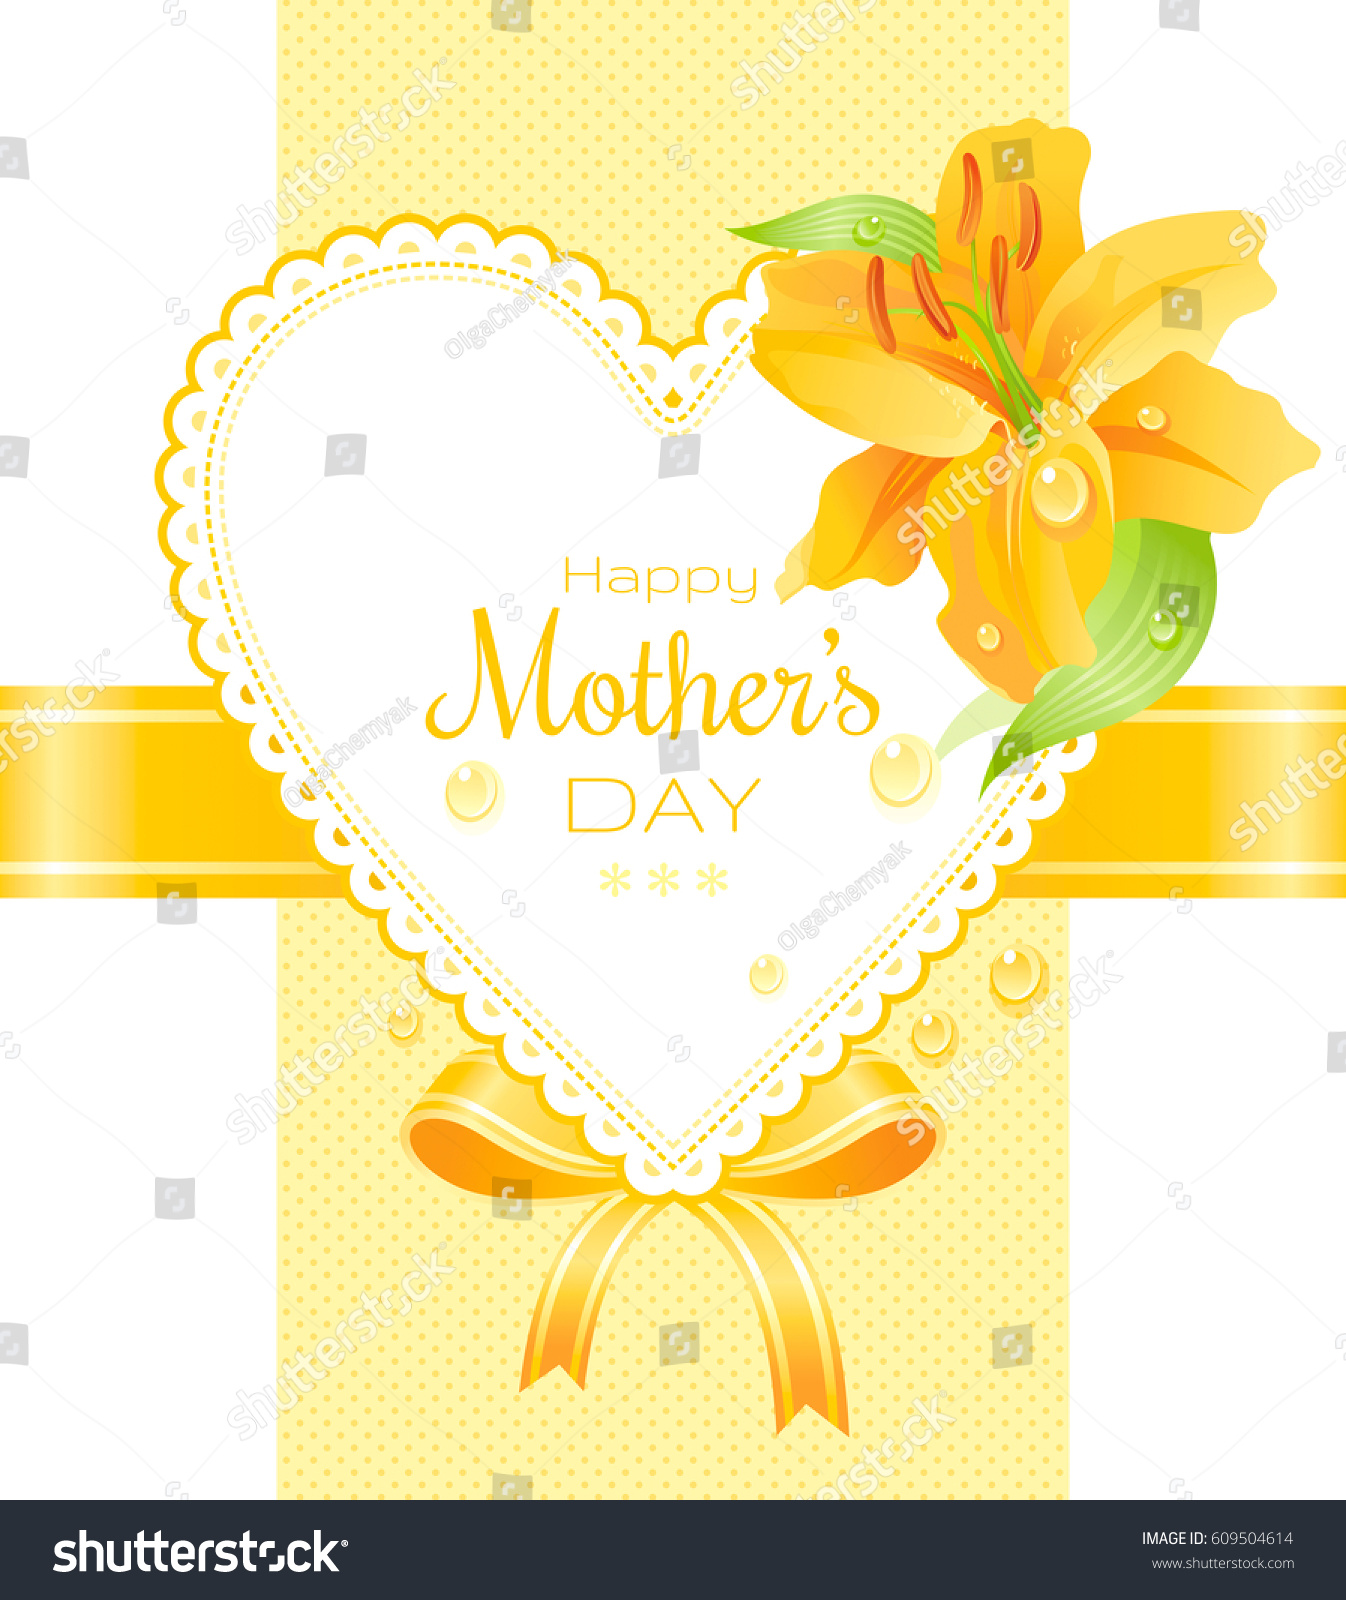 Garden yellow lily dew drops flower stock vector 609504614 for Classy mothers day cards